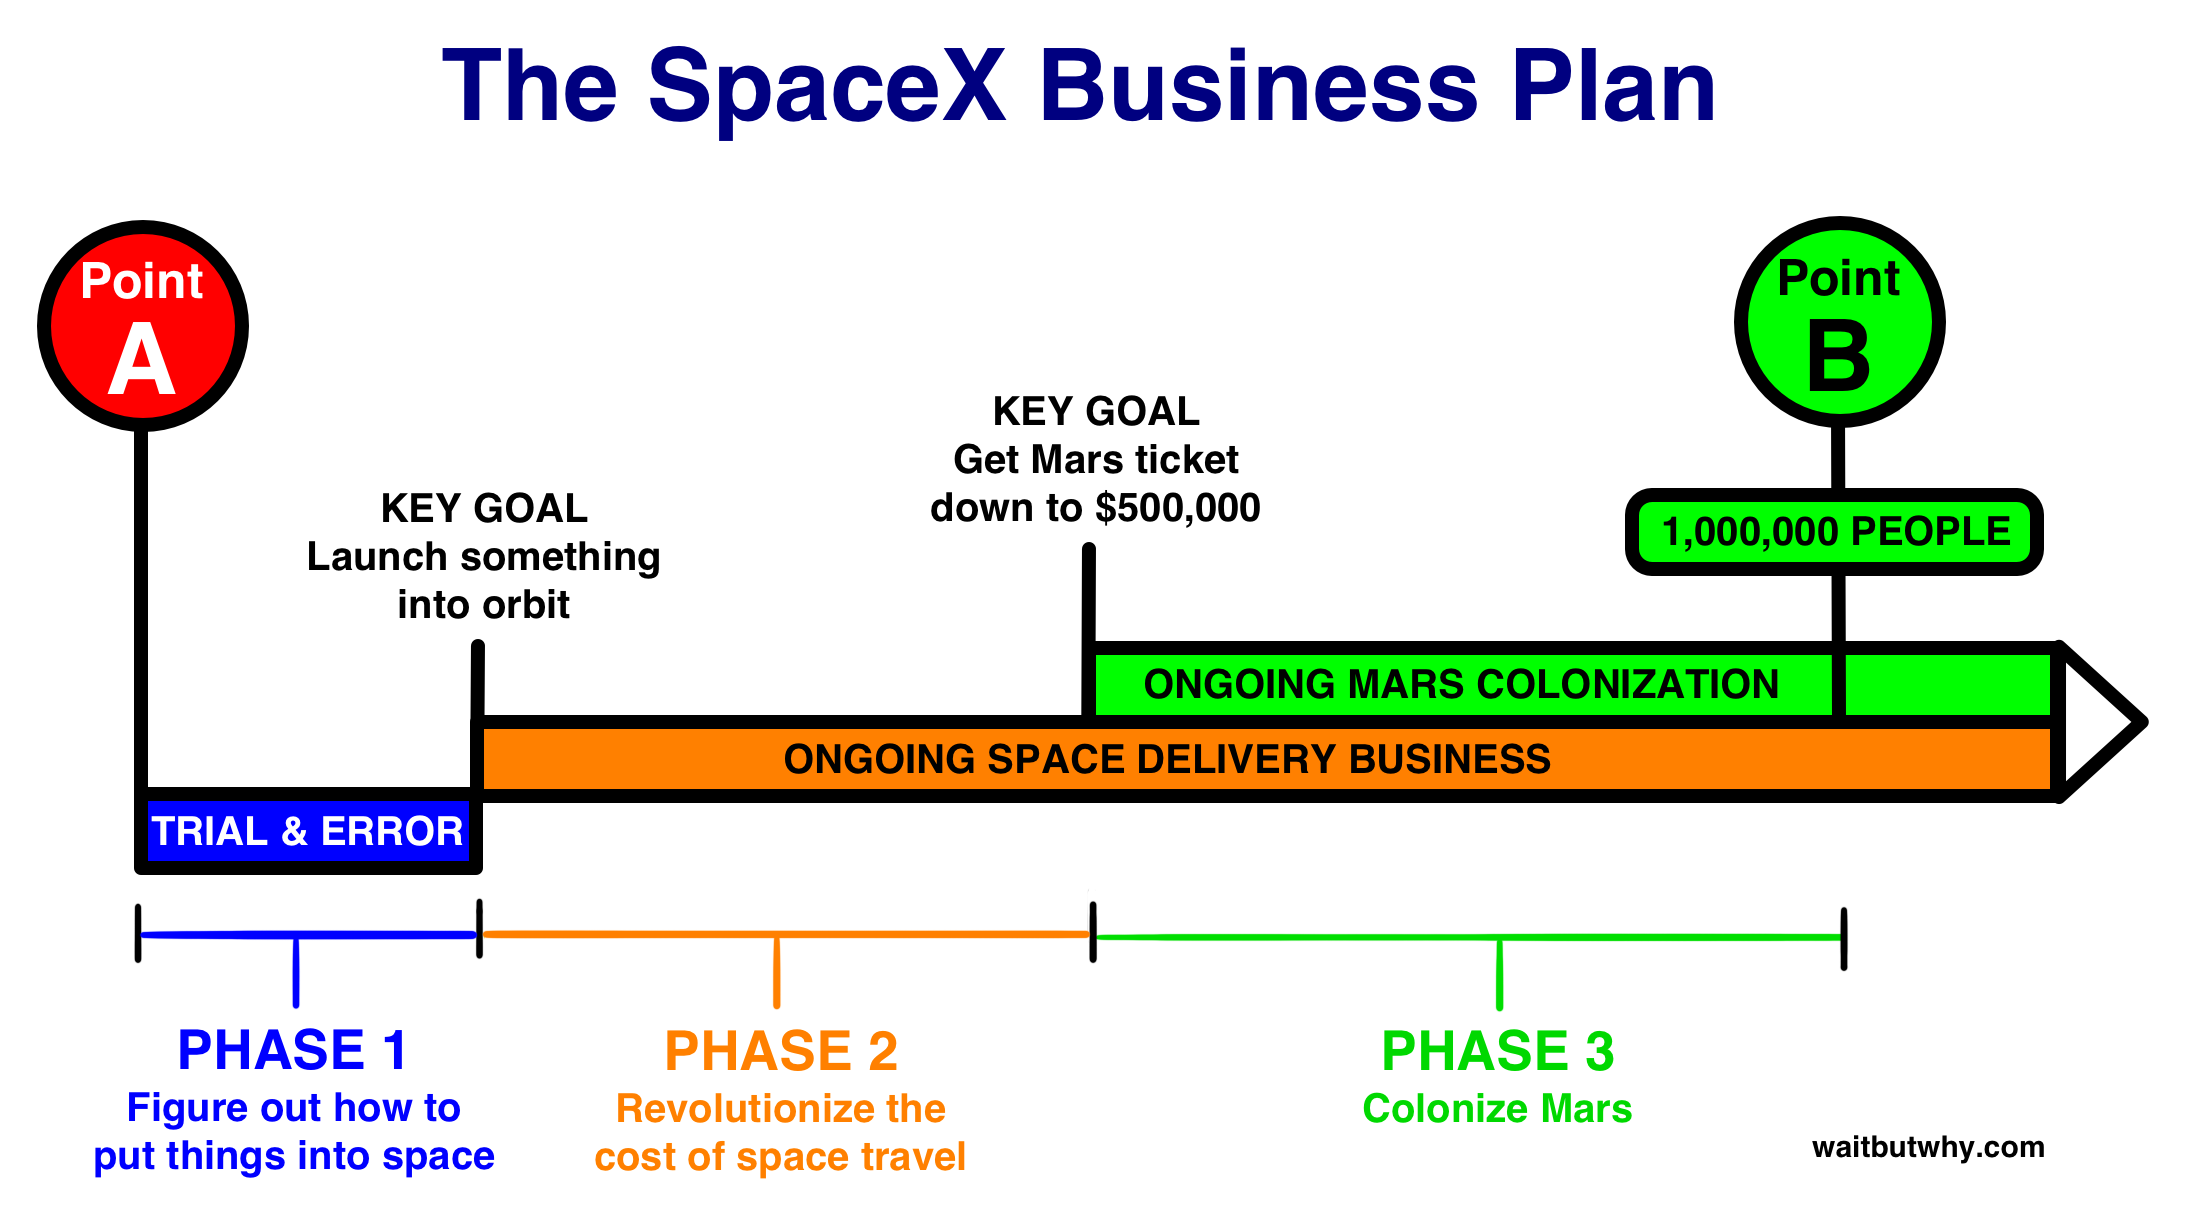 SpaceX Business Plan SpaceX Mars Colony Pinterest